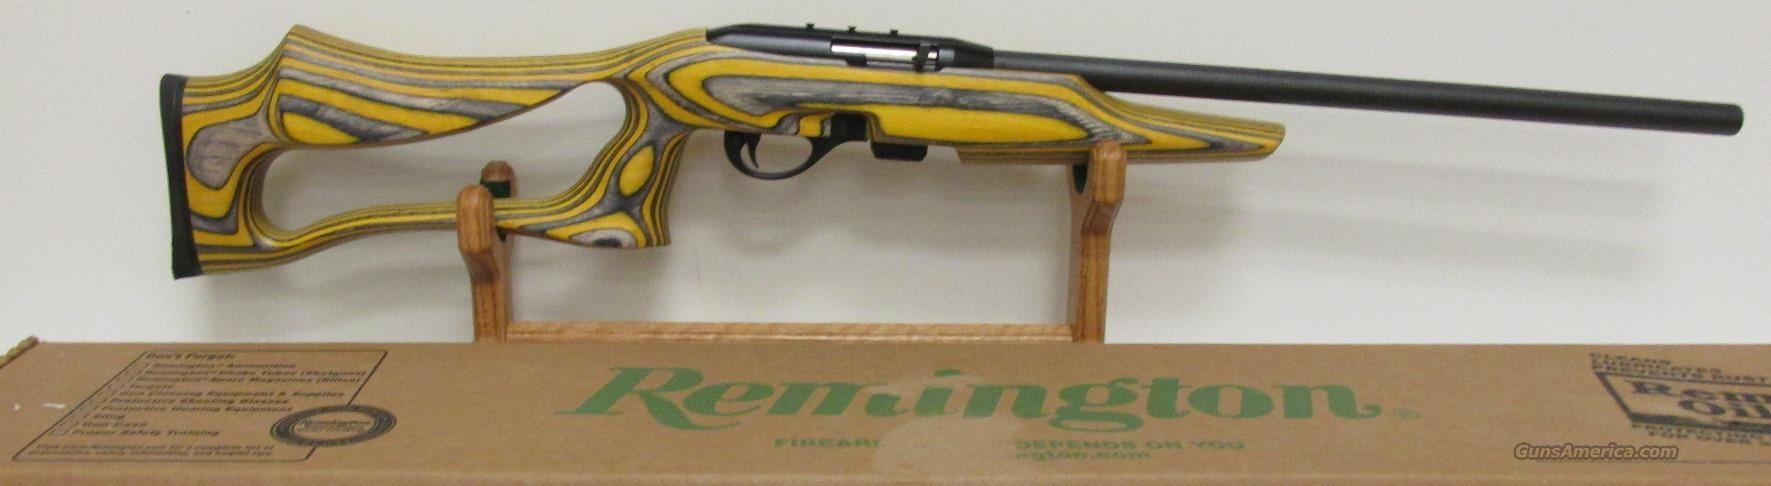 Remington NOS 597 LR Yellow Jacket 22LR  Guns > Rifles > Remington Rifles - Modern > .22 Rimfire Models